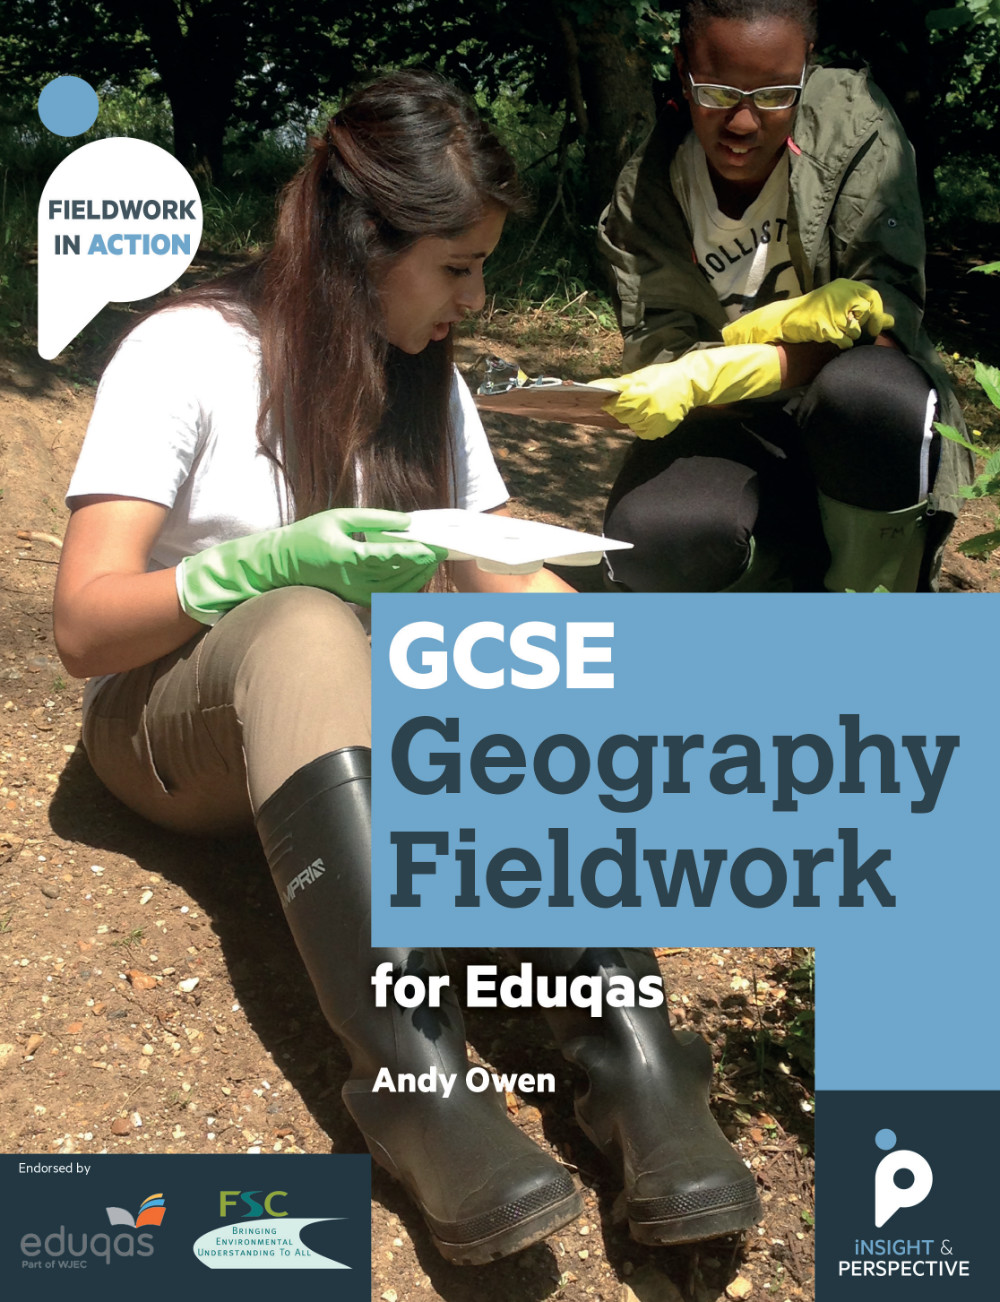 GCSE-Geography-Fieldwork-for-Eduqas.jpg